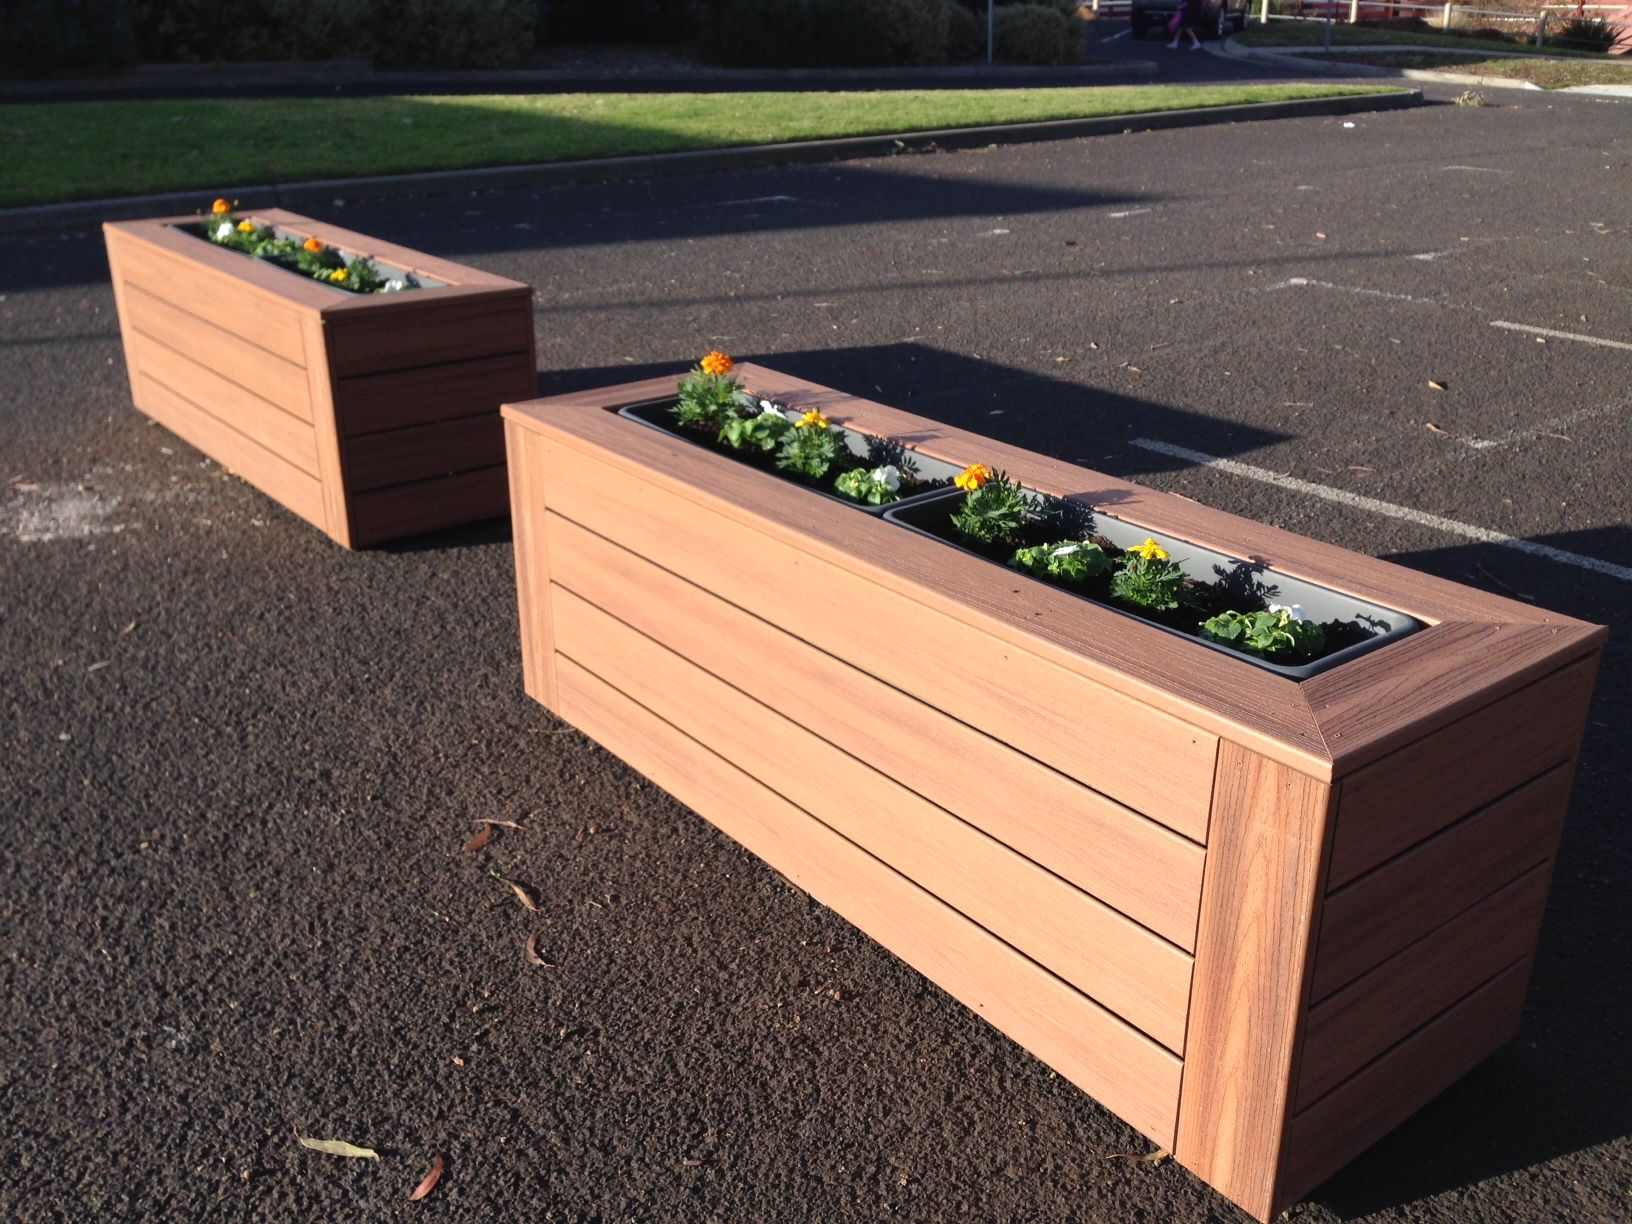 all kind of flower boxes  durable flower box  pinterest  flower  - cheap wood plastic flower boxes in nicaragua build your own wood plasticflower pot